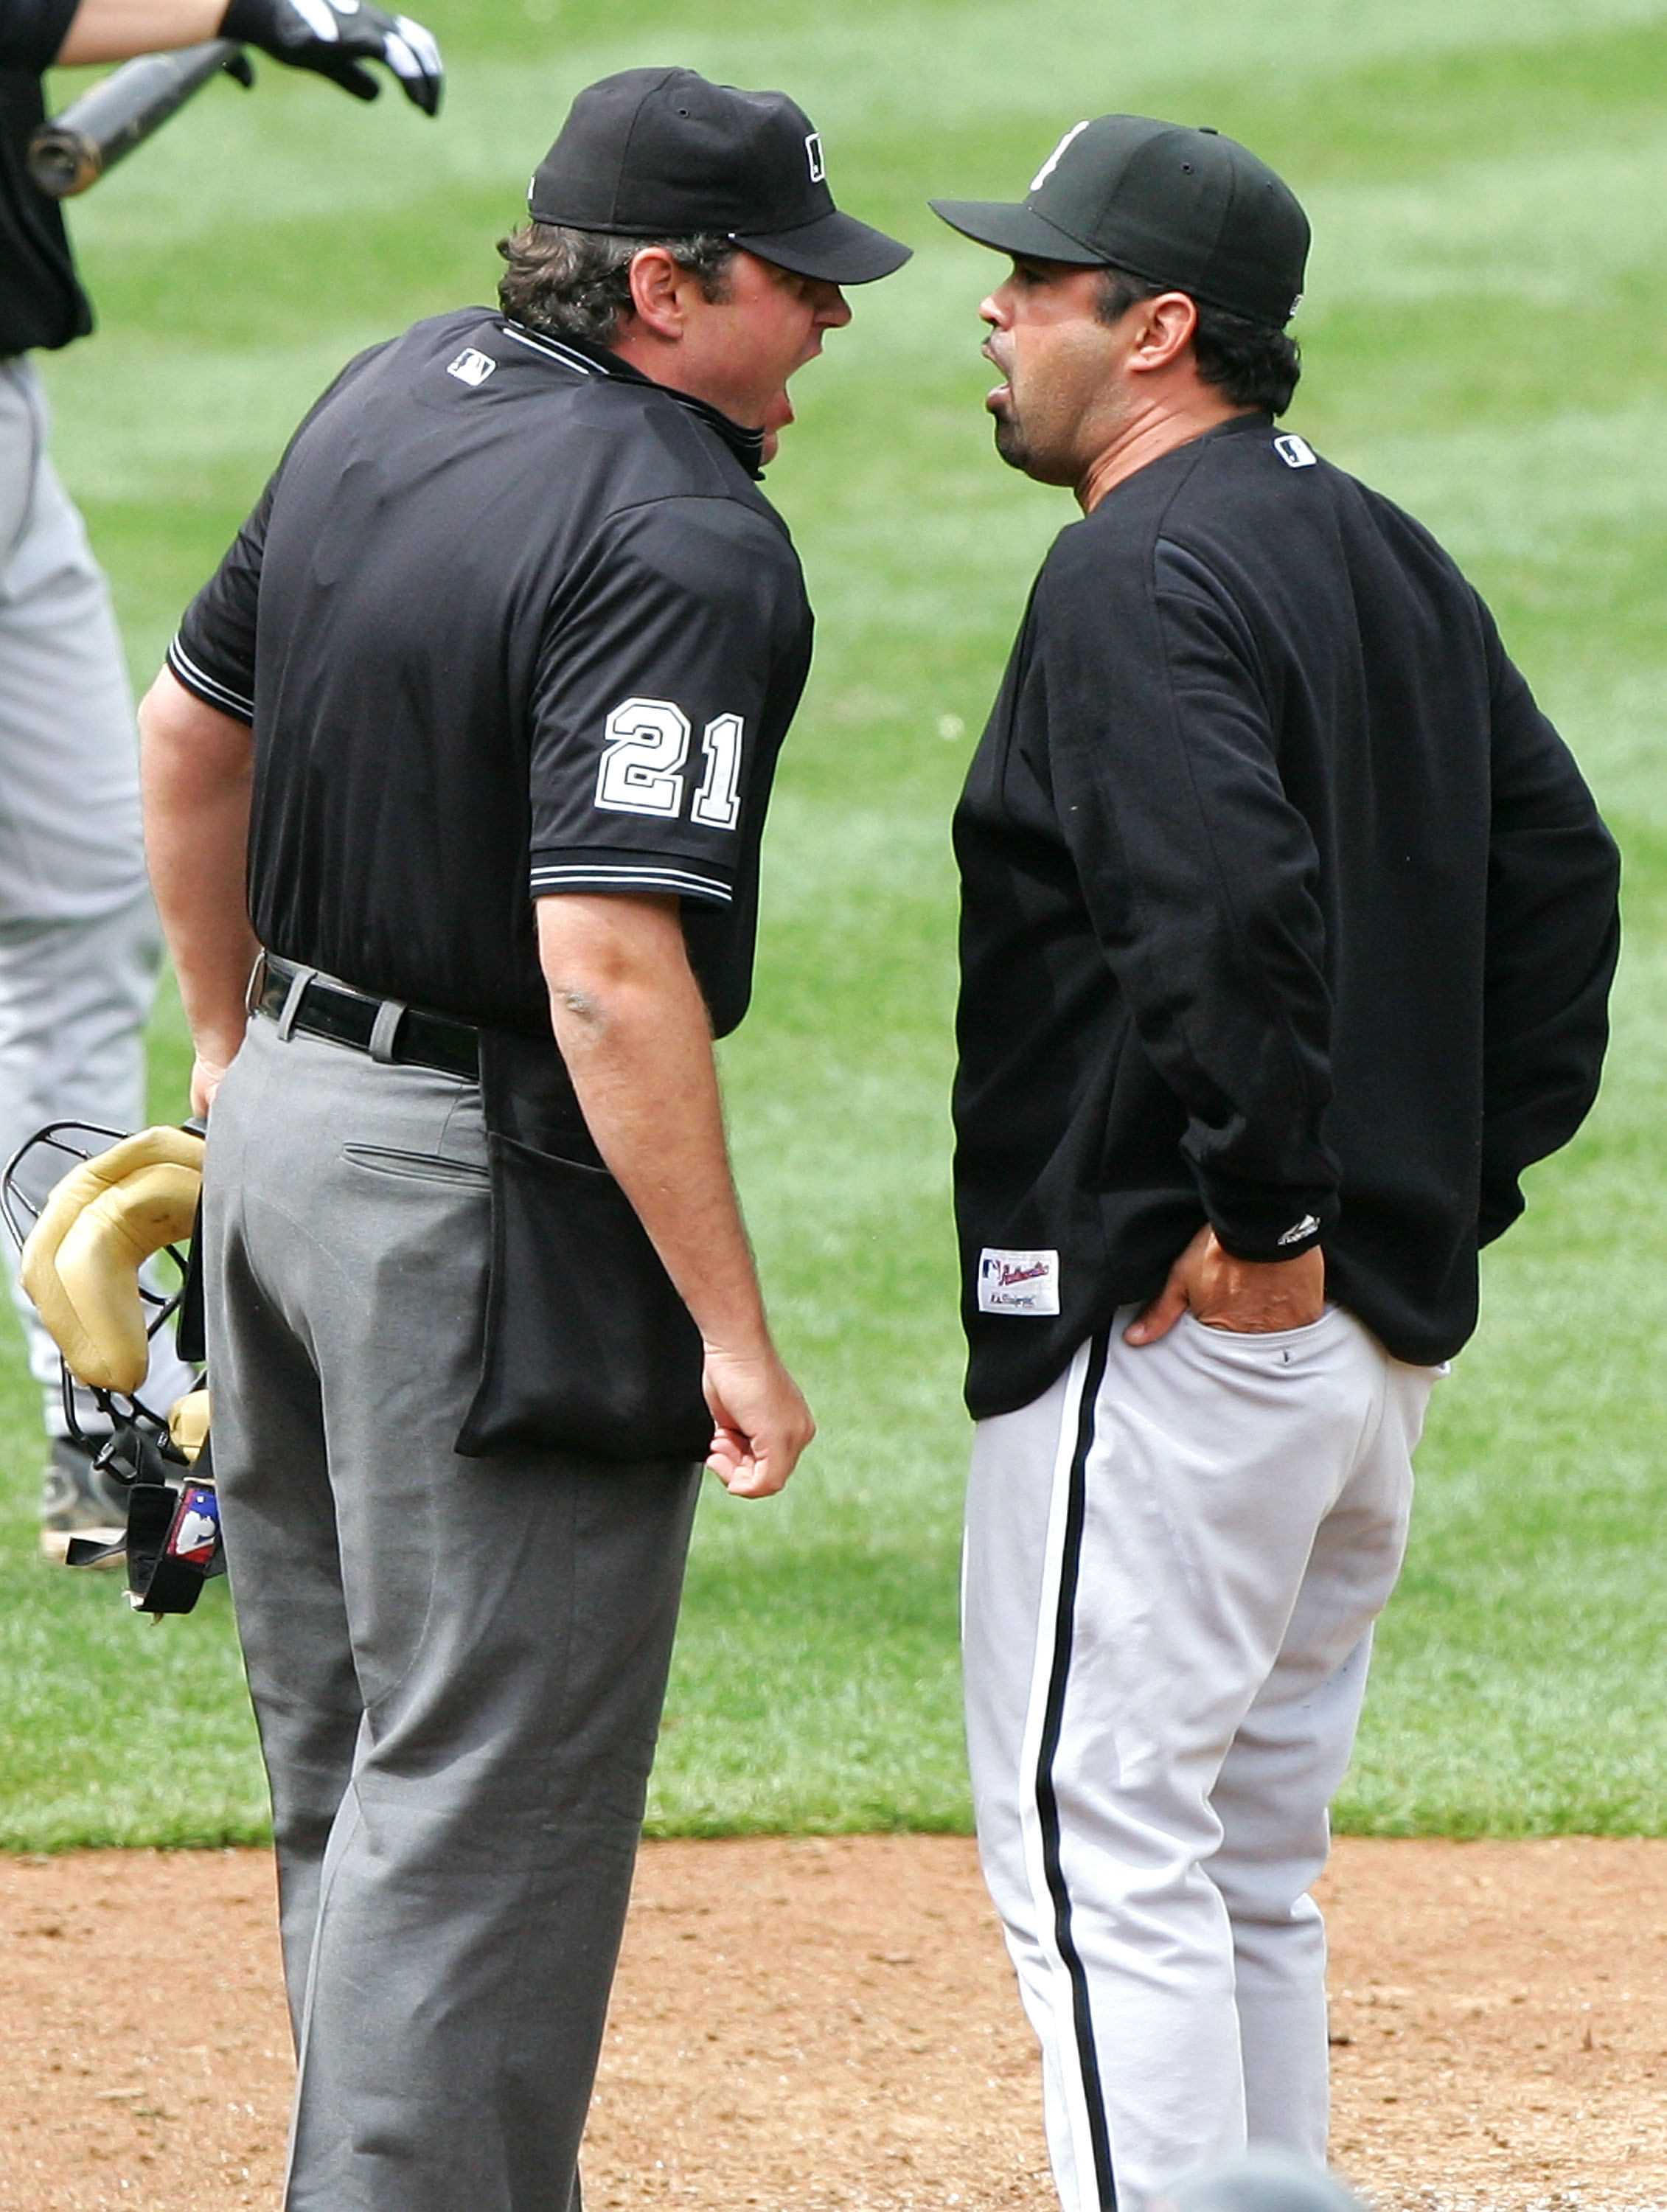 OAKLAND, CA - APRIL 27:  Umpire Hunter Wendelstedt #21 (L) and Ozzie Guillen #13, manager of the Chicago White Sox, argue during the game between the Sox and the Oakland Athletics on April 27, 2005 at McAfee Coliseum in Oakland, California.  (Photo by Jed